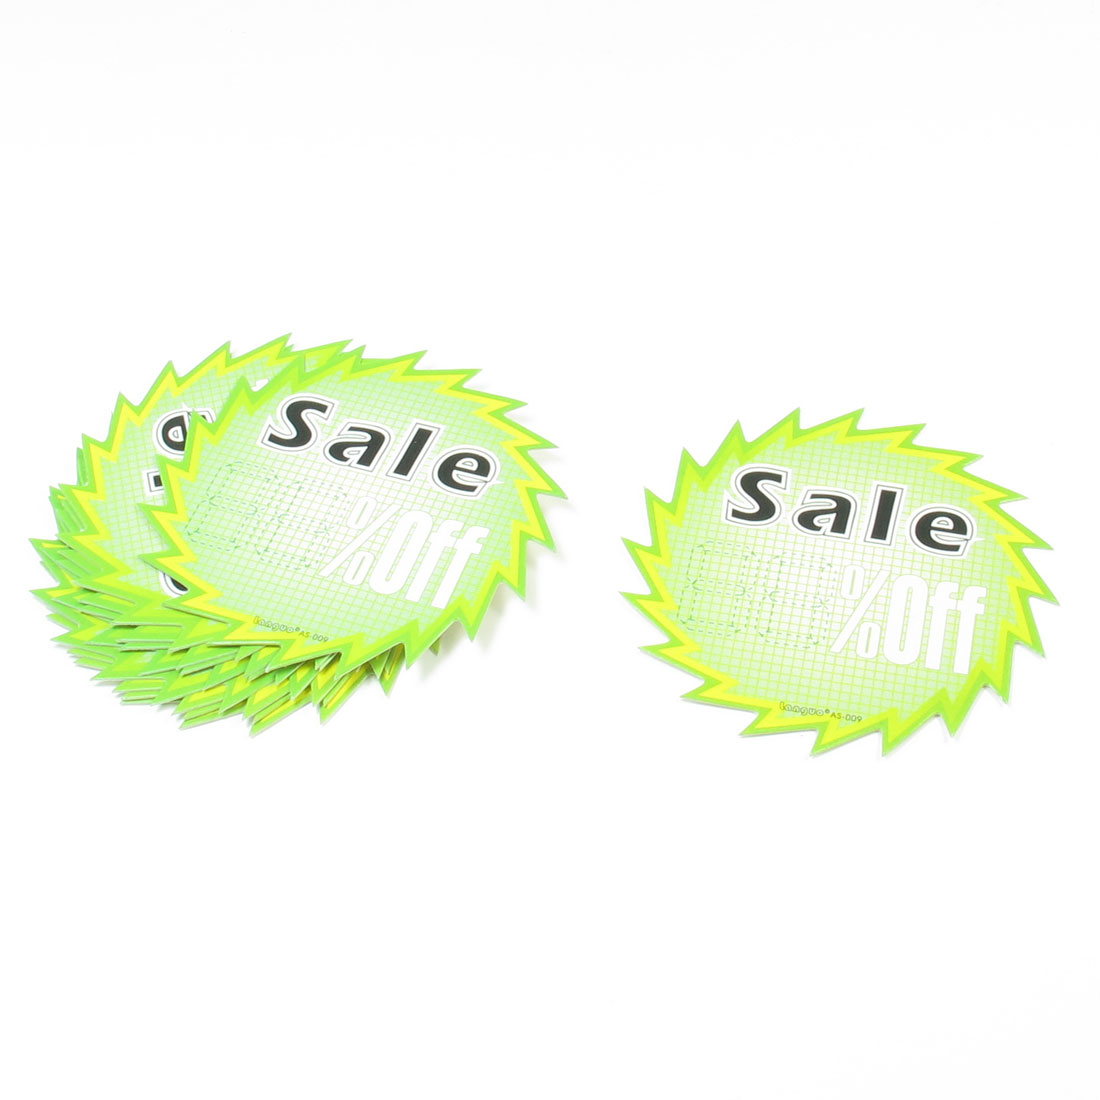 Retailing Shops Off Sale Printed Promotional Price Tags POP Cards 10 Pcs